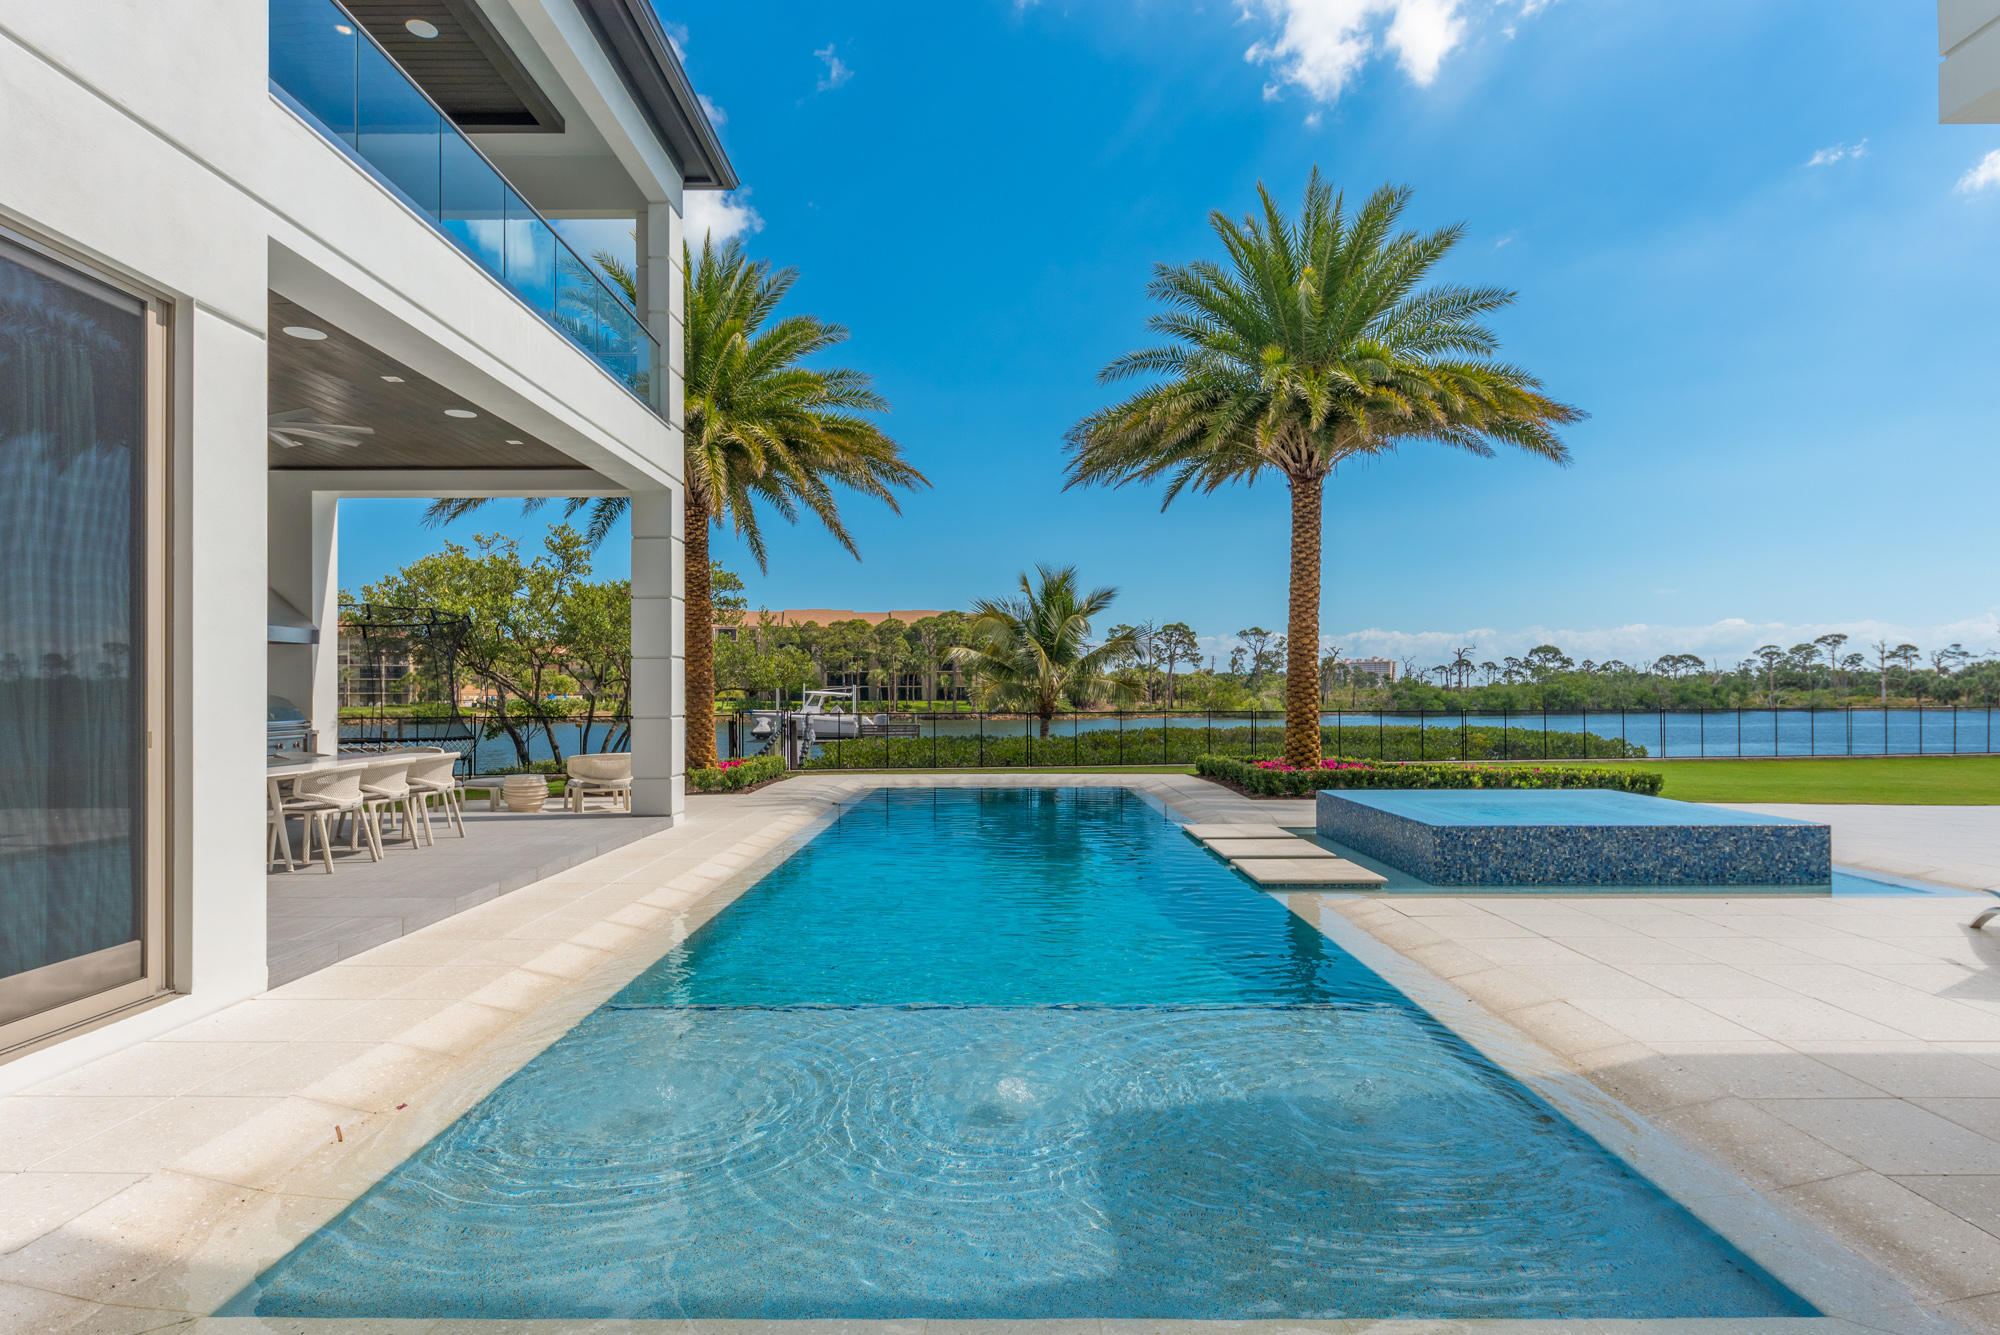 HARBOR PLACE HOMES FOR SALE